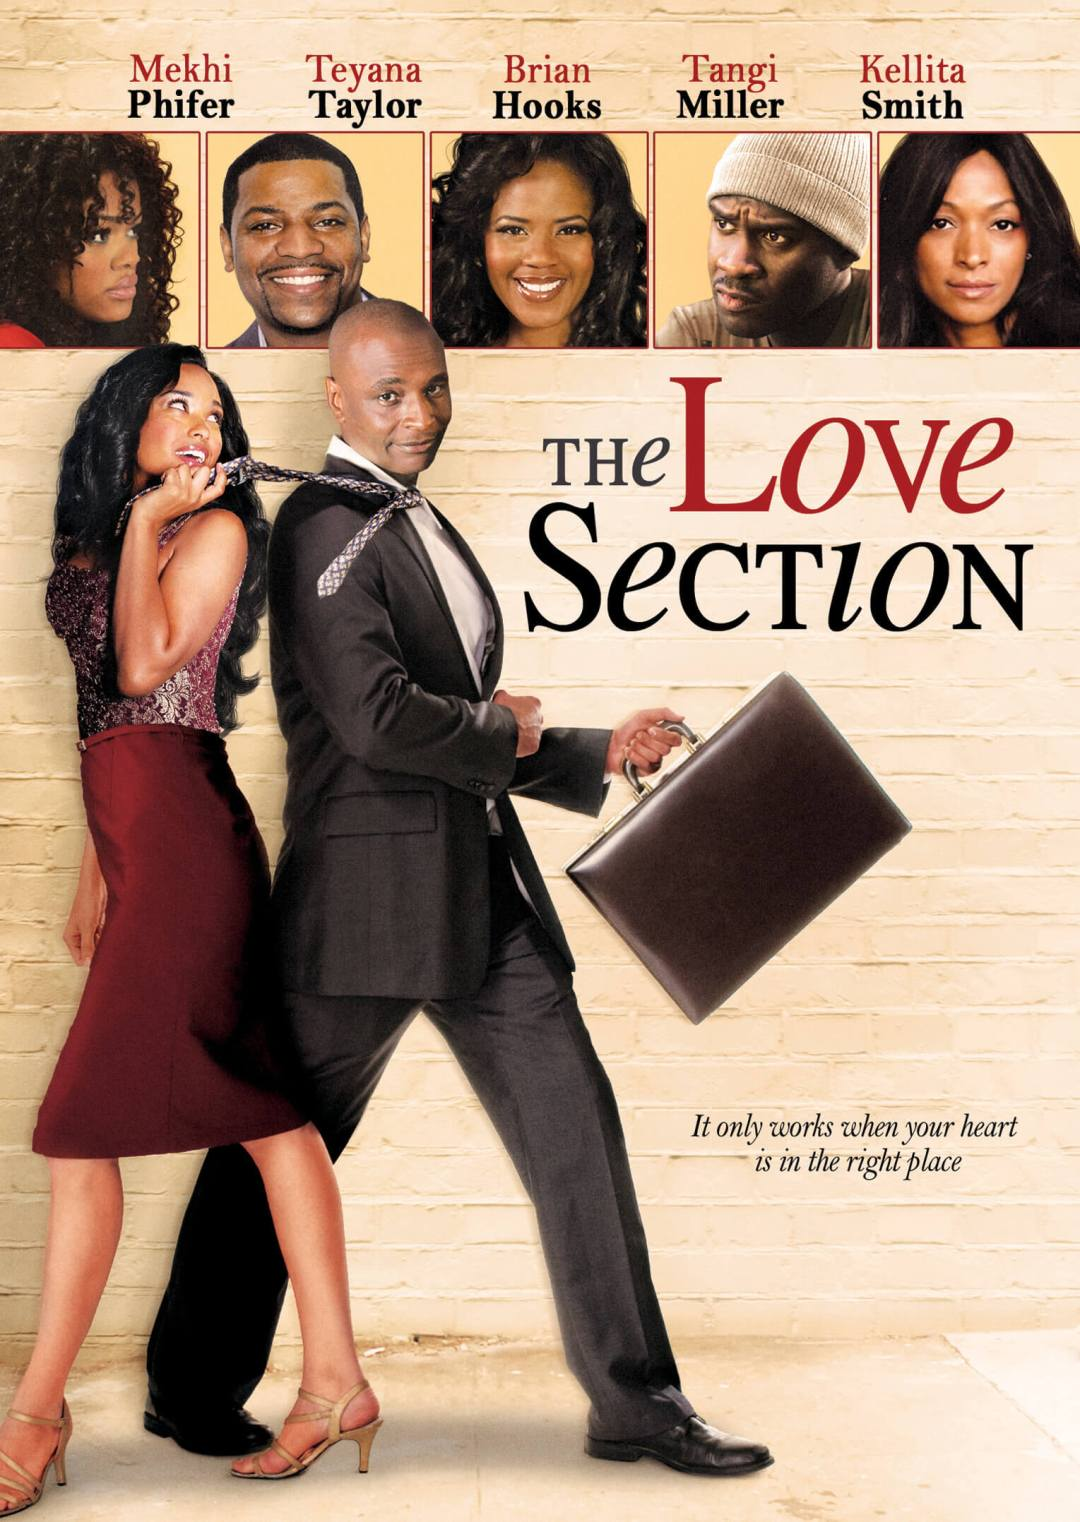 The Love Section THE LOVE SECTION